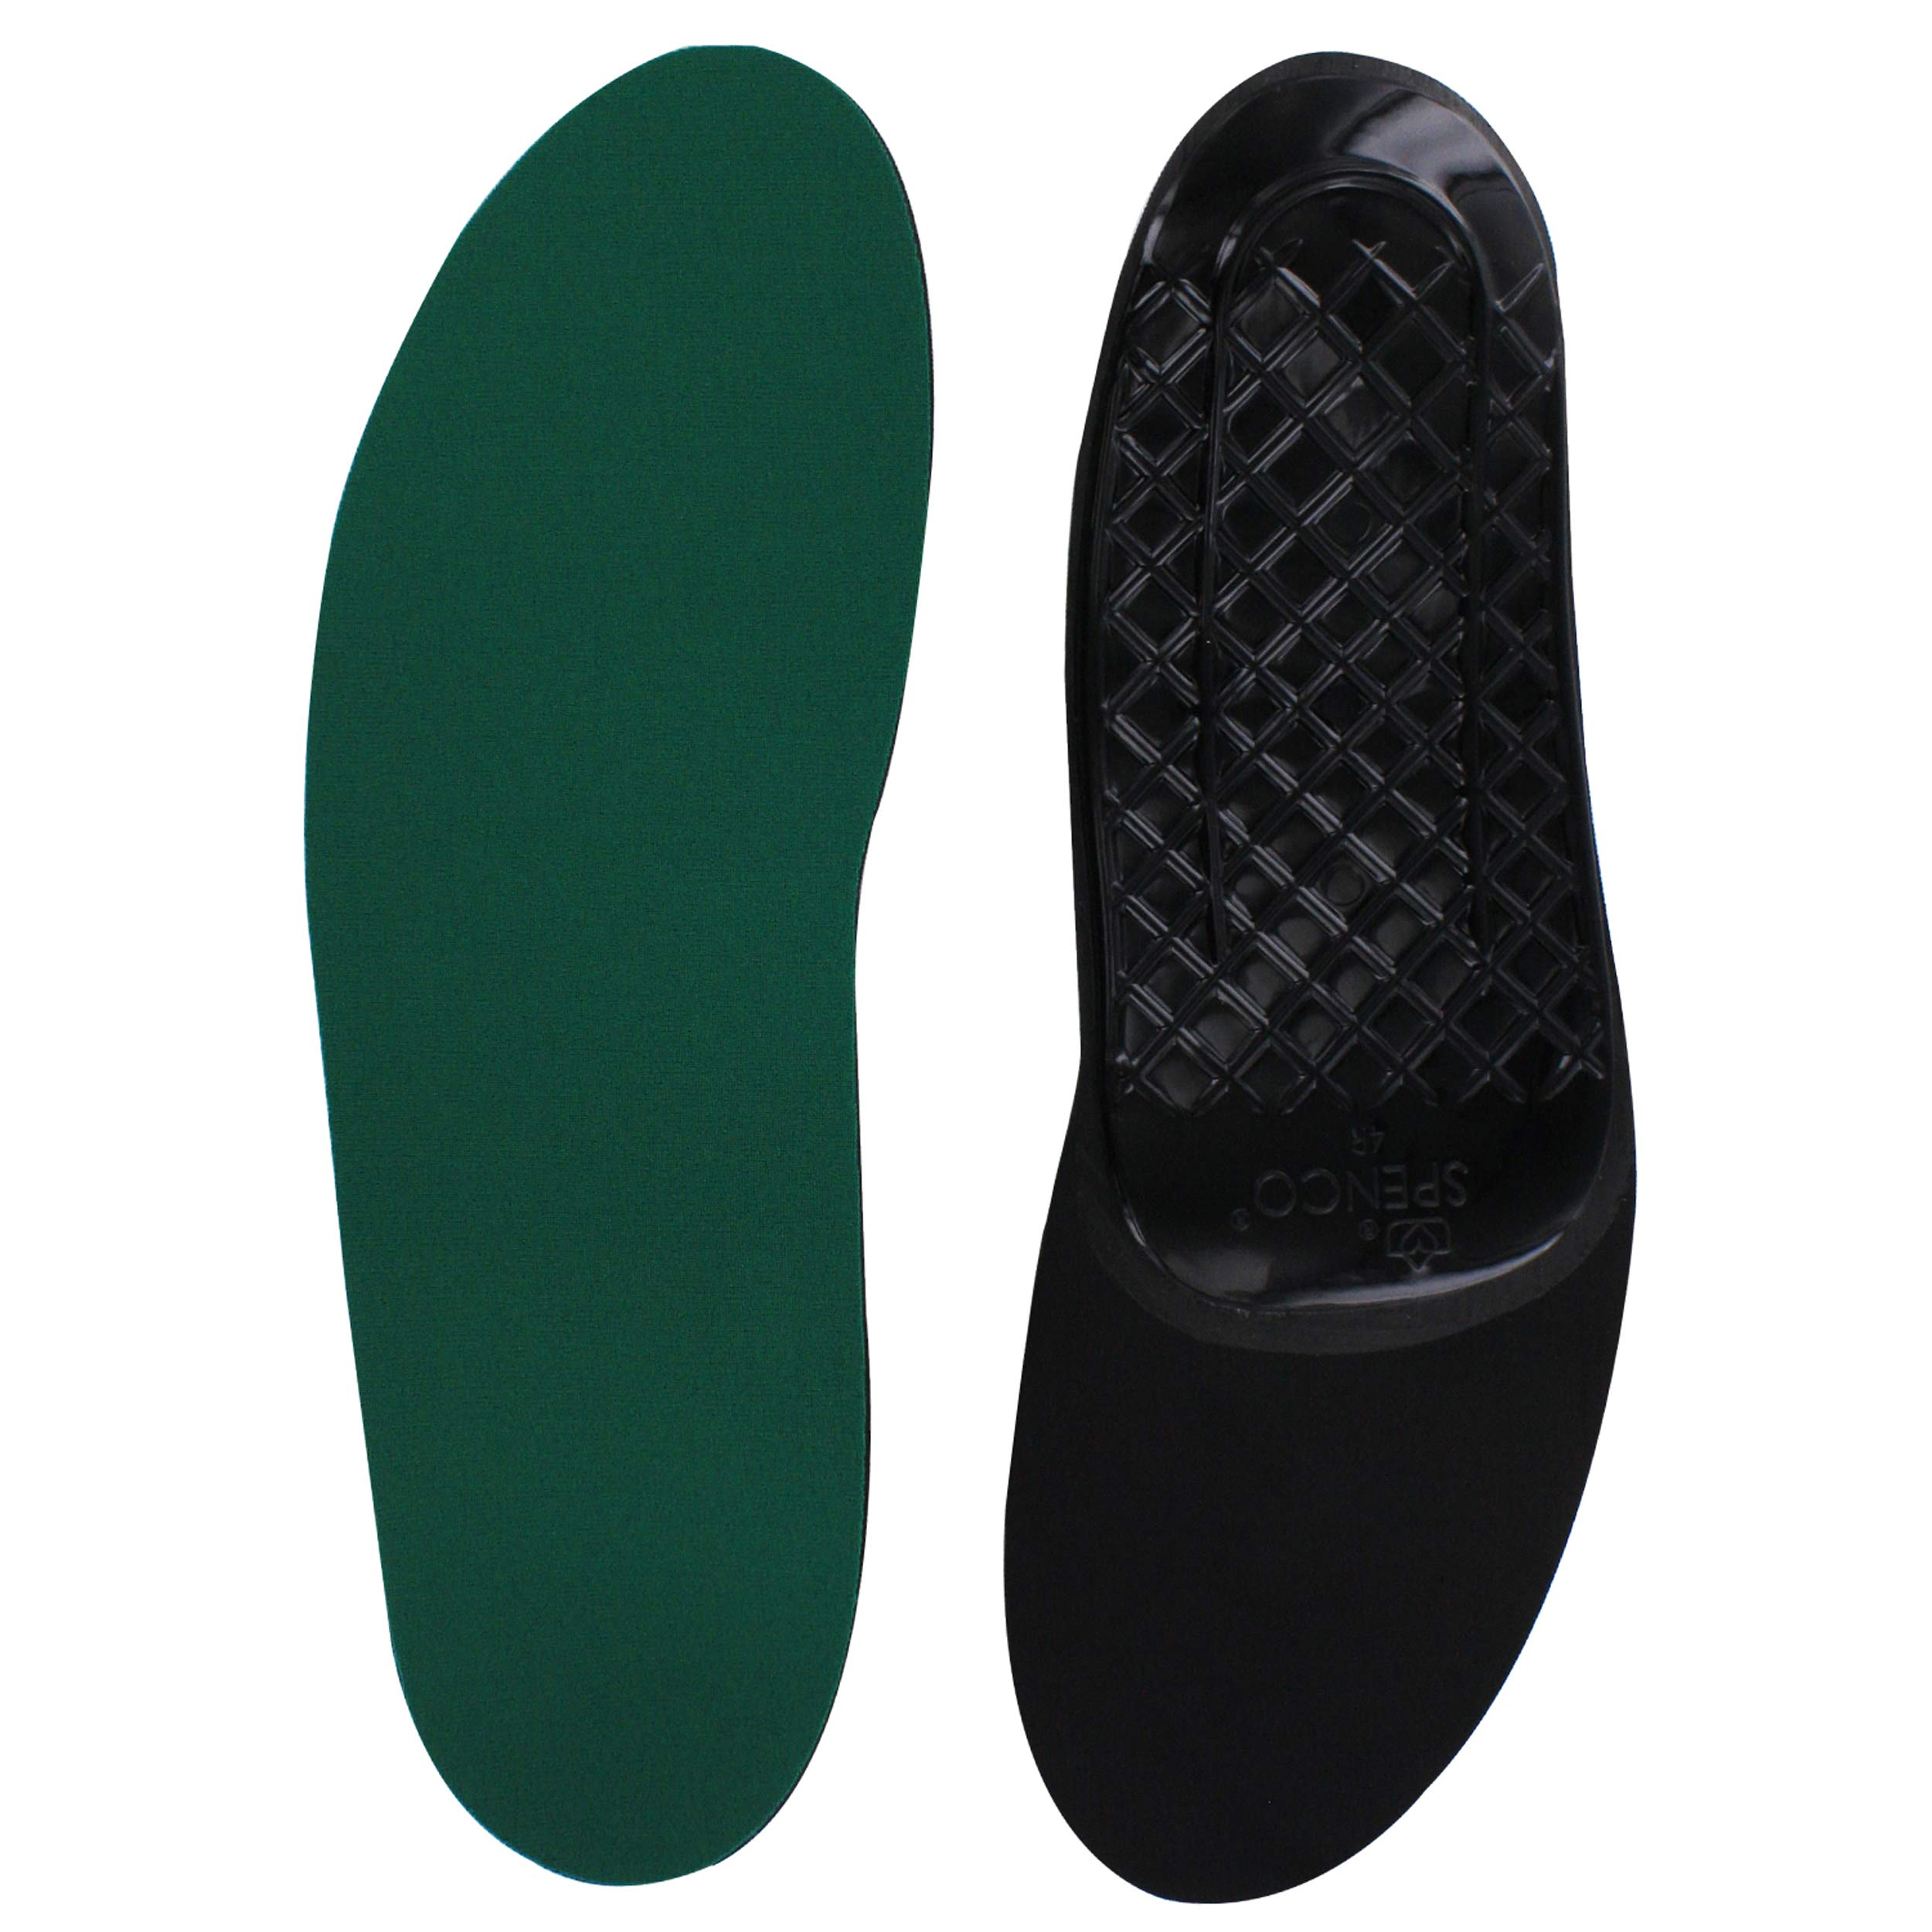 Spenco Rx Orthotic Arch Support Full Length Shoe Insoles, Women's 9-10.5/Men's 8-9.5 by Spenco